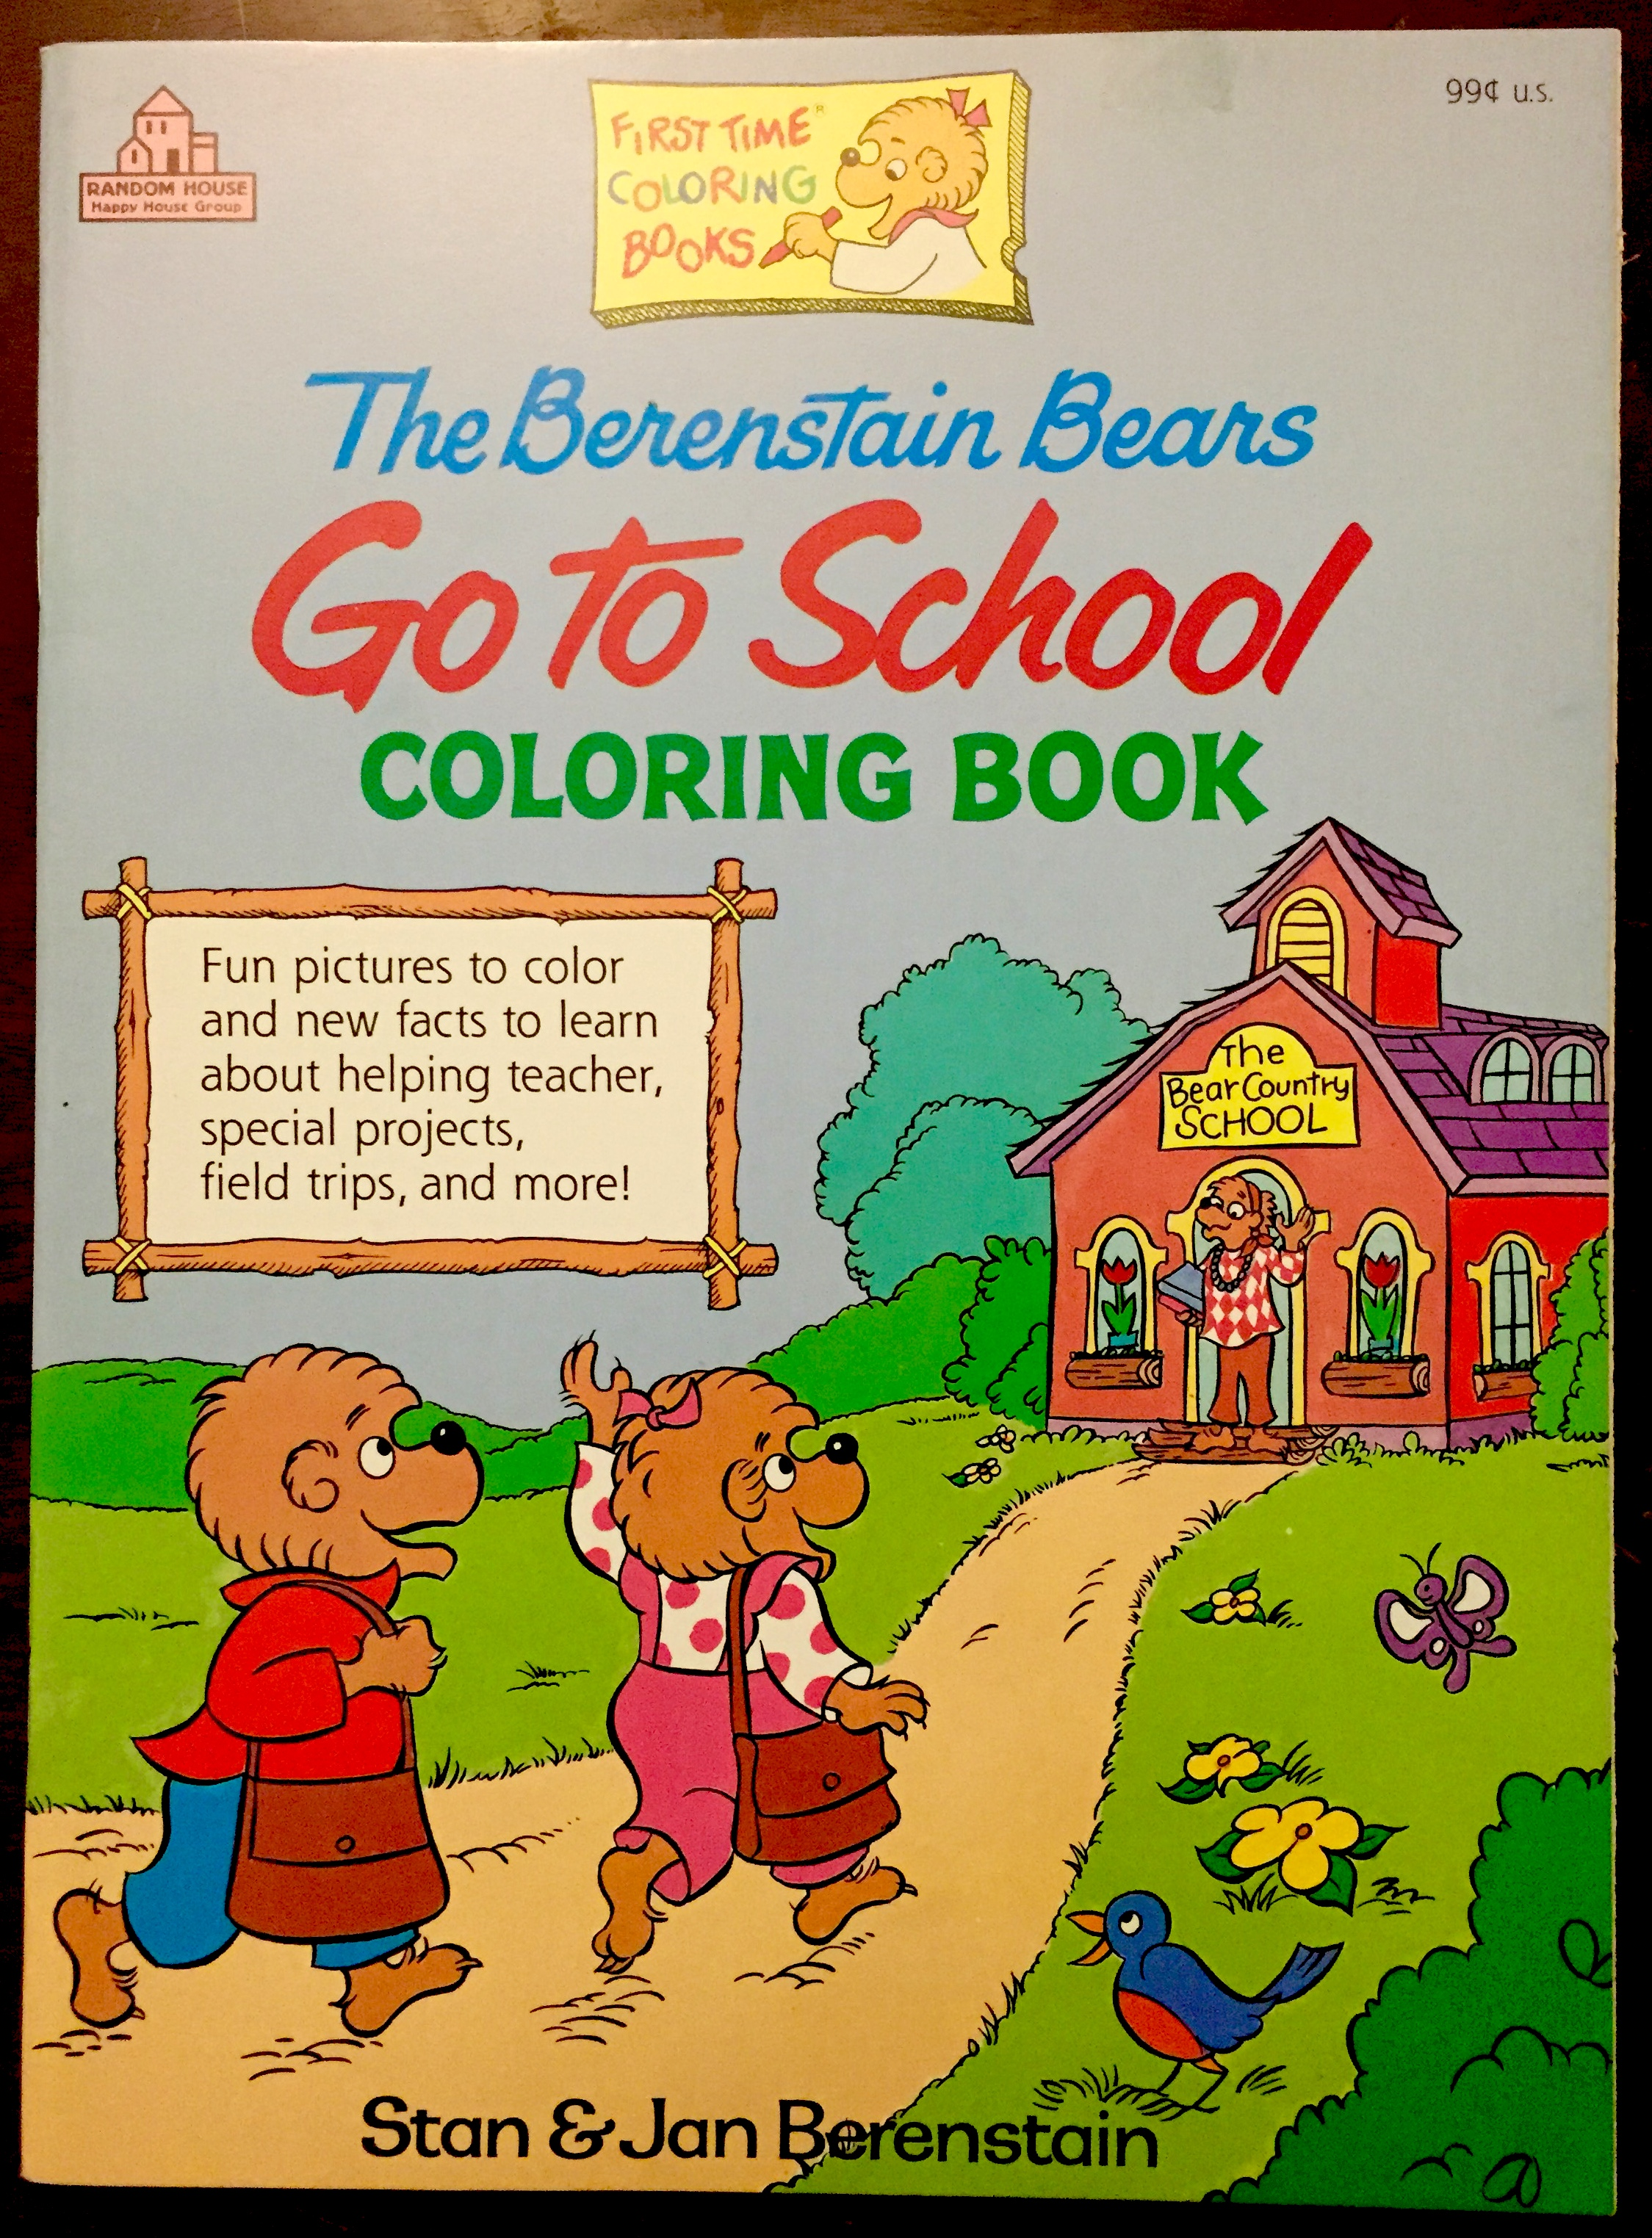 go to school is the rarest of the first time coloring books random house the berenstain bears - Berenstain Bears Coloring Book